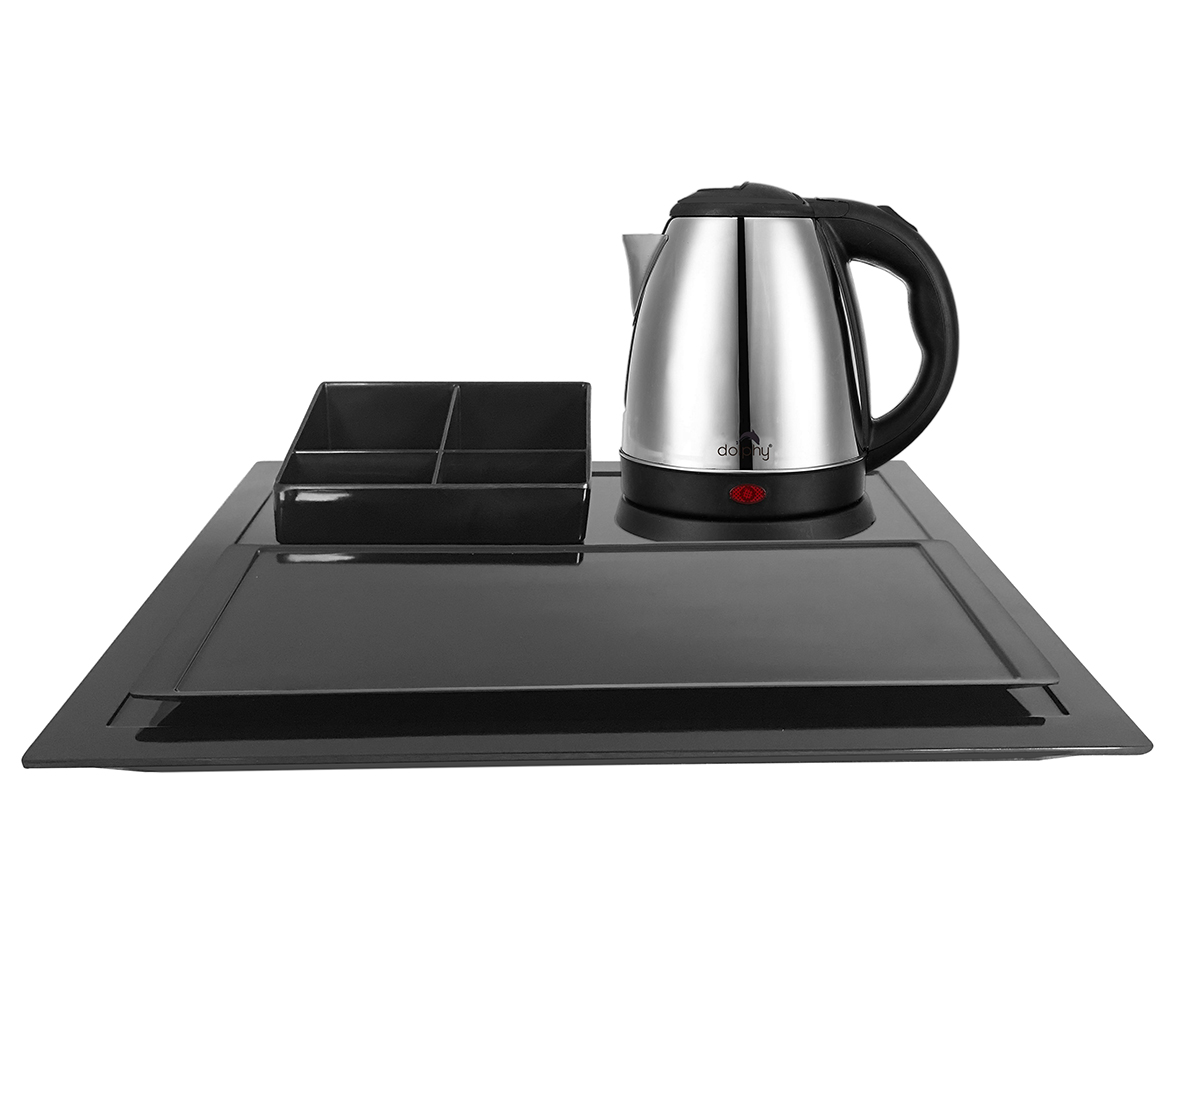 Stainless Steel Kettle with Tray Sets (1.2 Ltr) DKTL0023